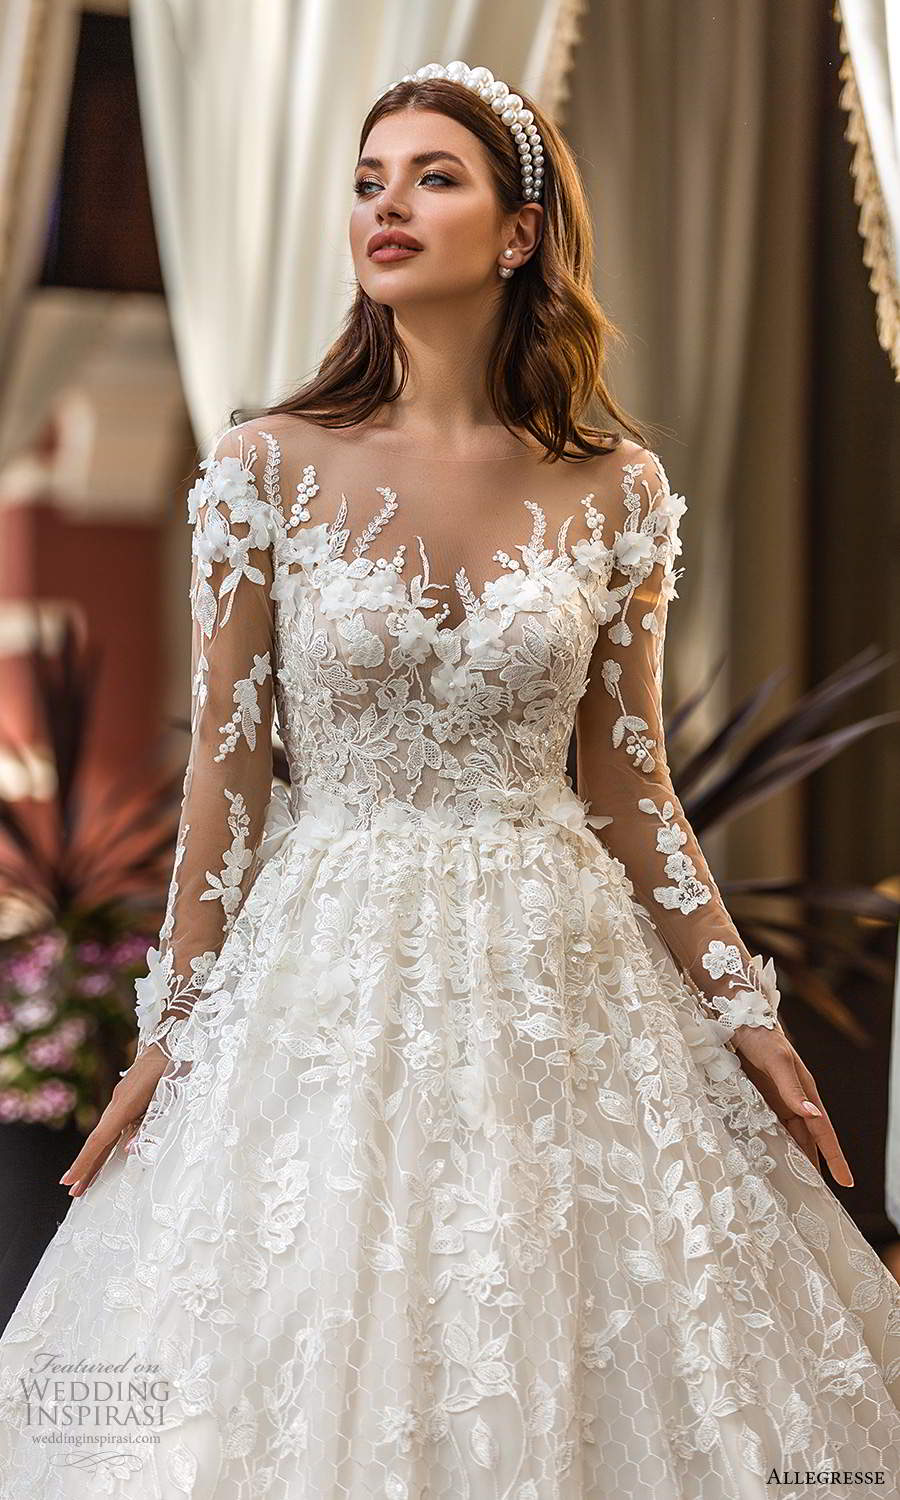 allegresse 2021 bridal illusion long sleeves off shoulder sweetheart neckline fully embellished a line ball gown wedding dress chapel train (5) zv